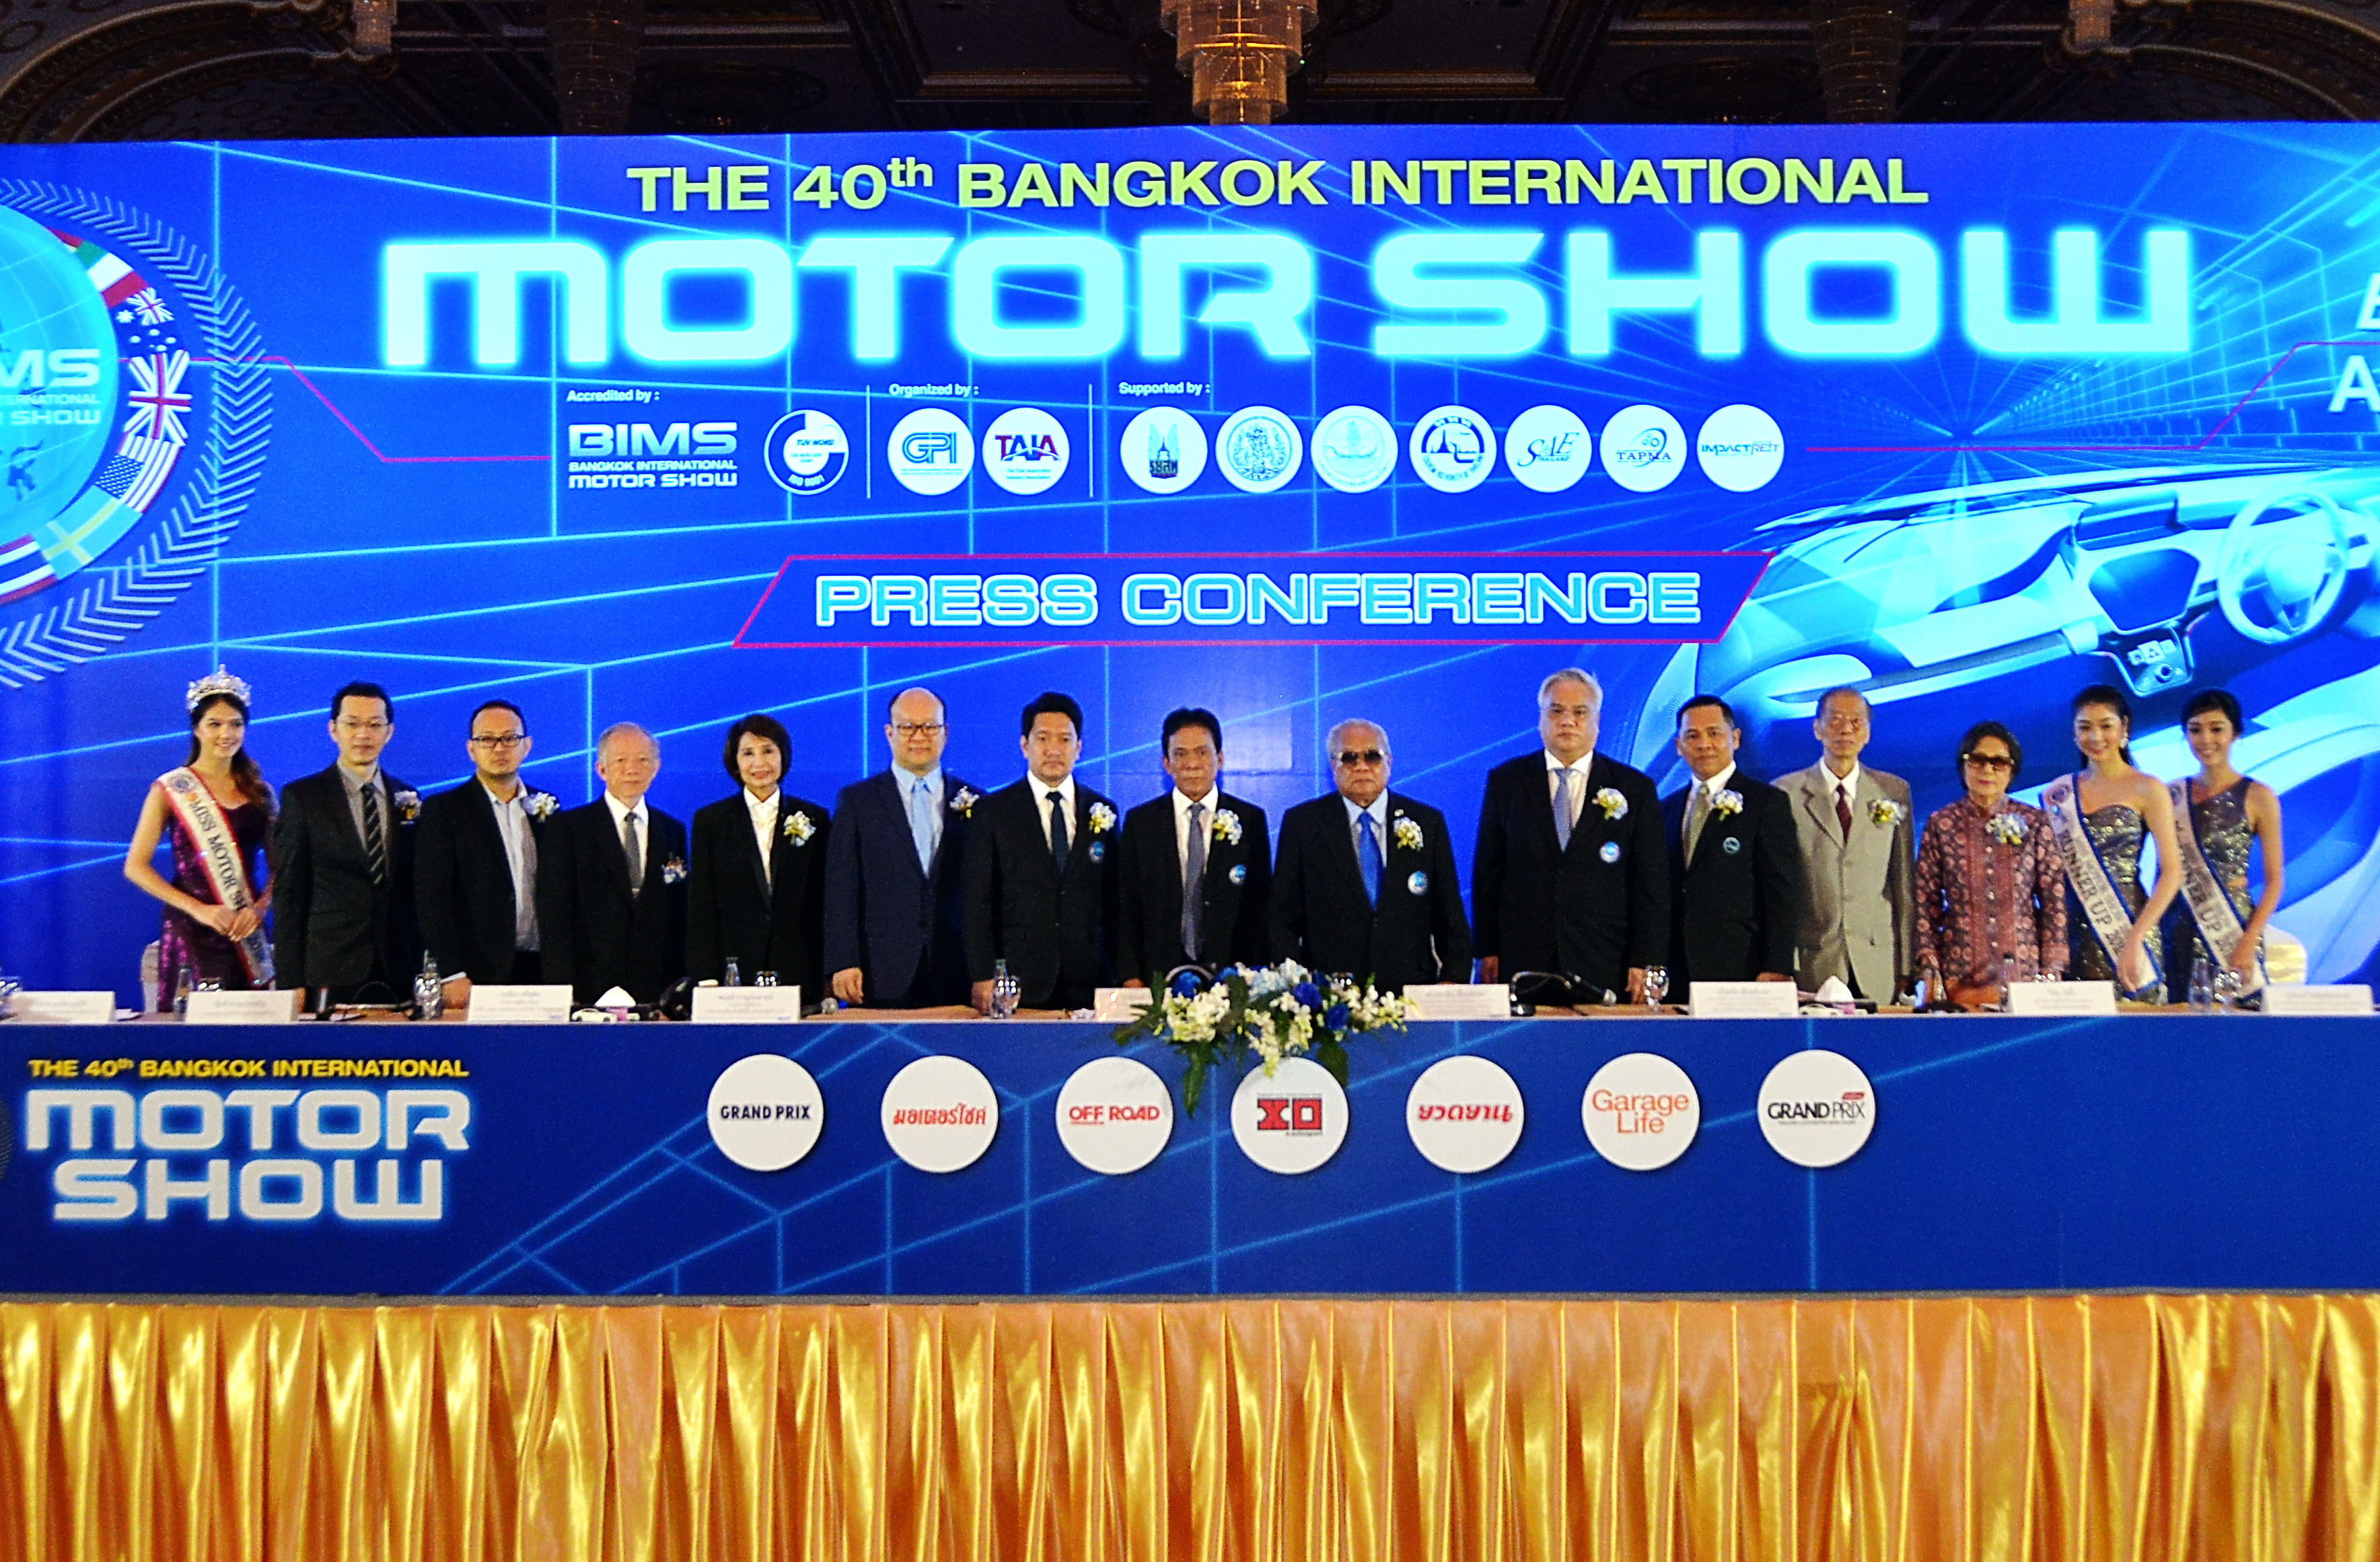 The 40th Bangkok International Motor Show 2019 เริ่มแล้ว!!